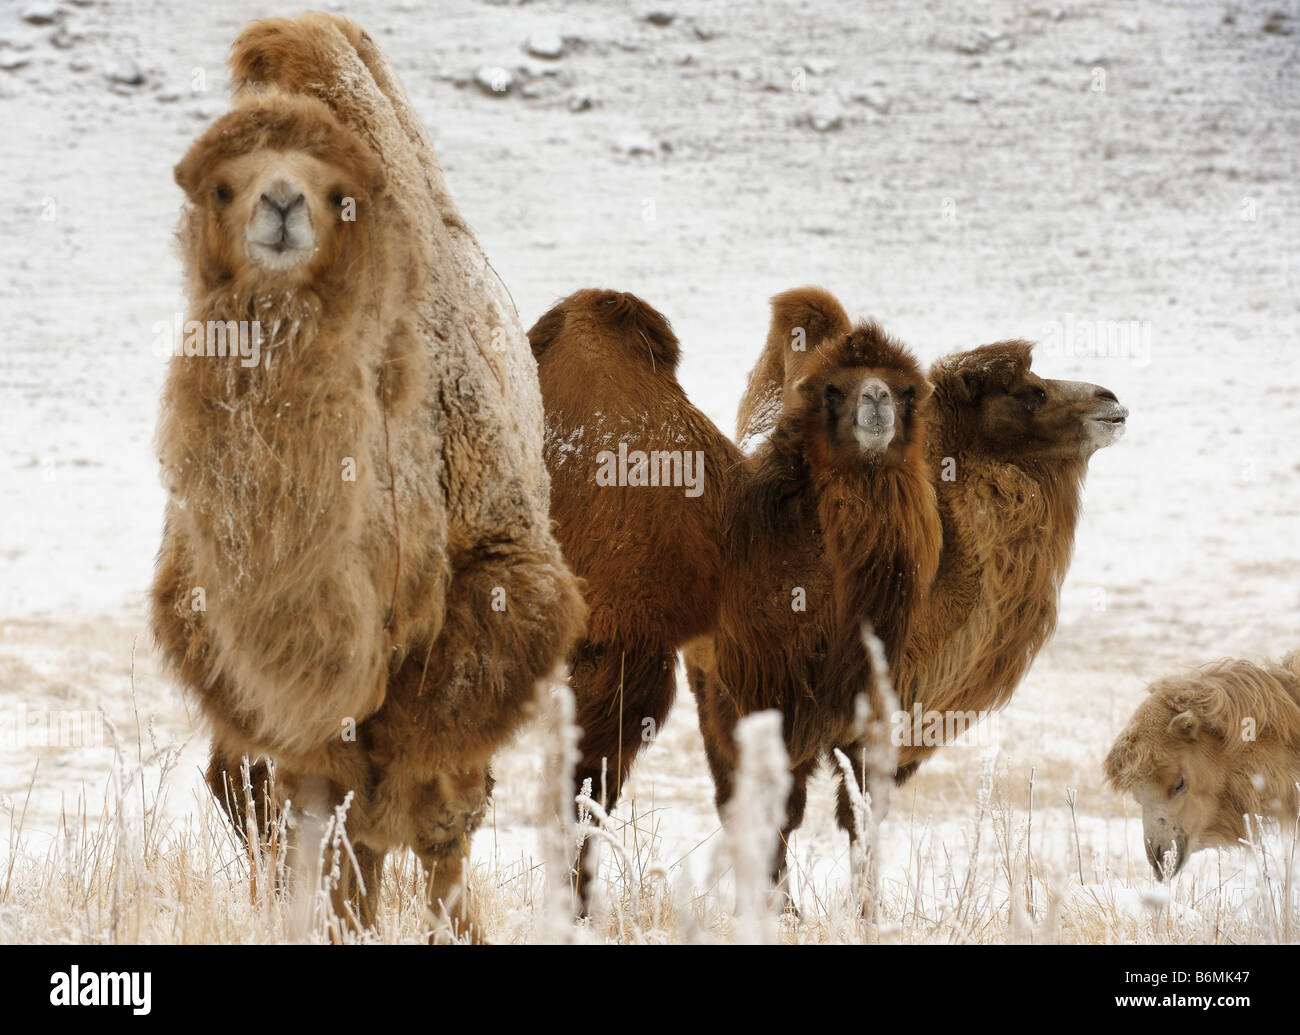 The Bactrian Camel - Stock Image